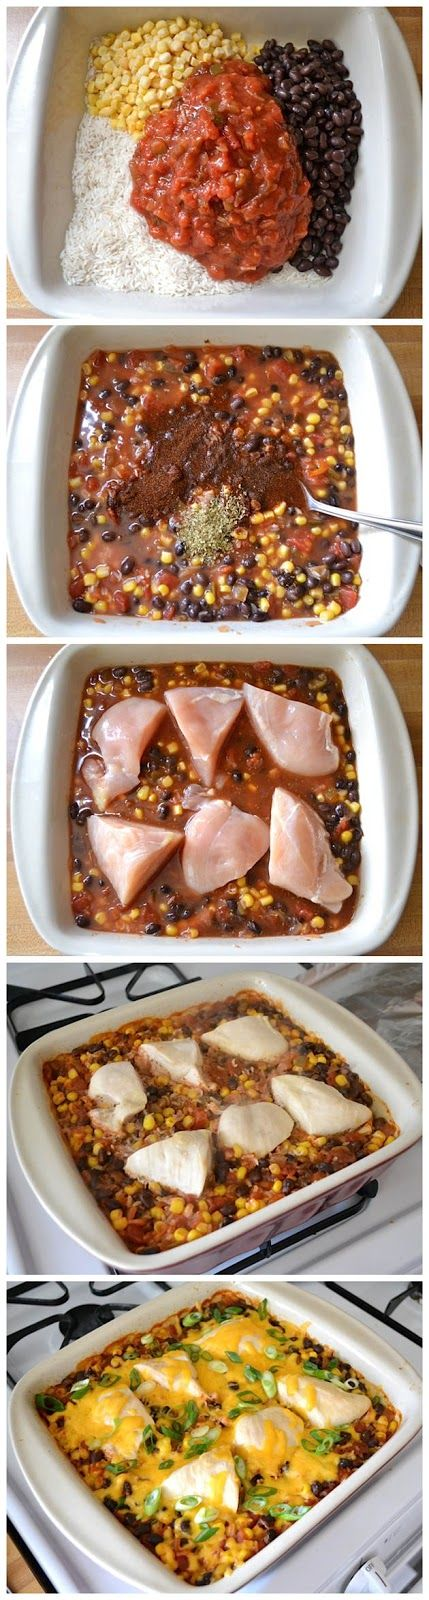 Normal Recipe: salsa chicken casserole 1 cup uncooked rice 1 cup frozen corn kernels (thawed) 1 (15 oz.) can black beans 1 (16 oz.) jar salsa 1 cup chicken broth ½ Tbsp chili powder ½ tsp oregano 2 large (1.5 lbs.) chicken breasts 1 cup shredded cheddar cheese 2 whole green onions, sliced